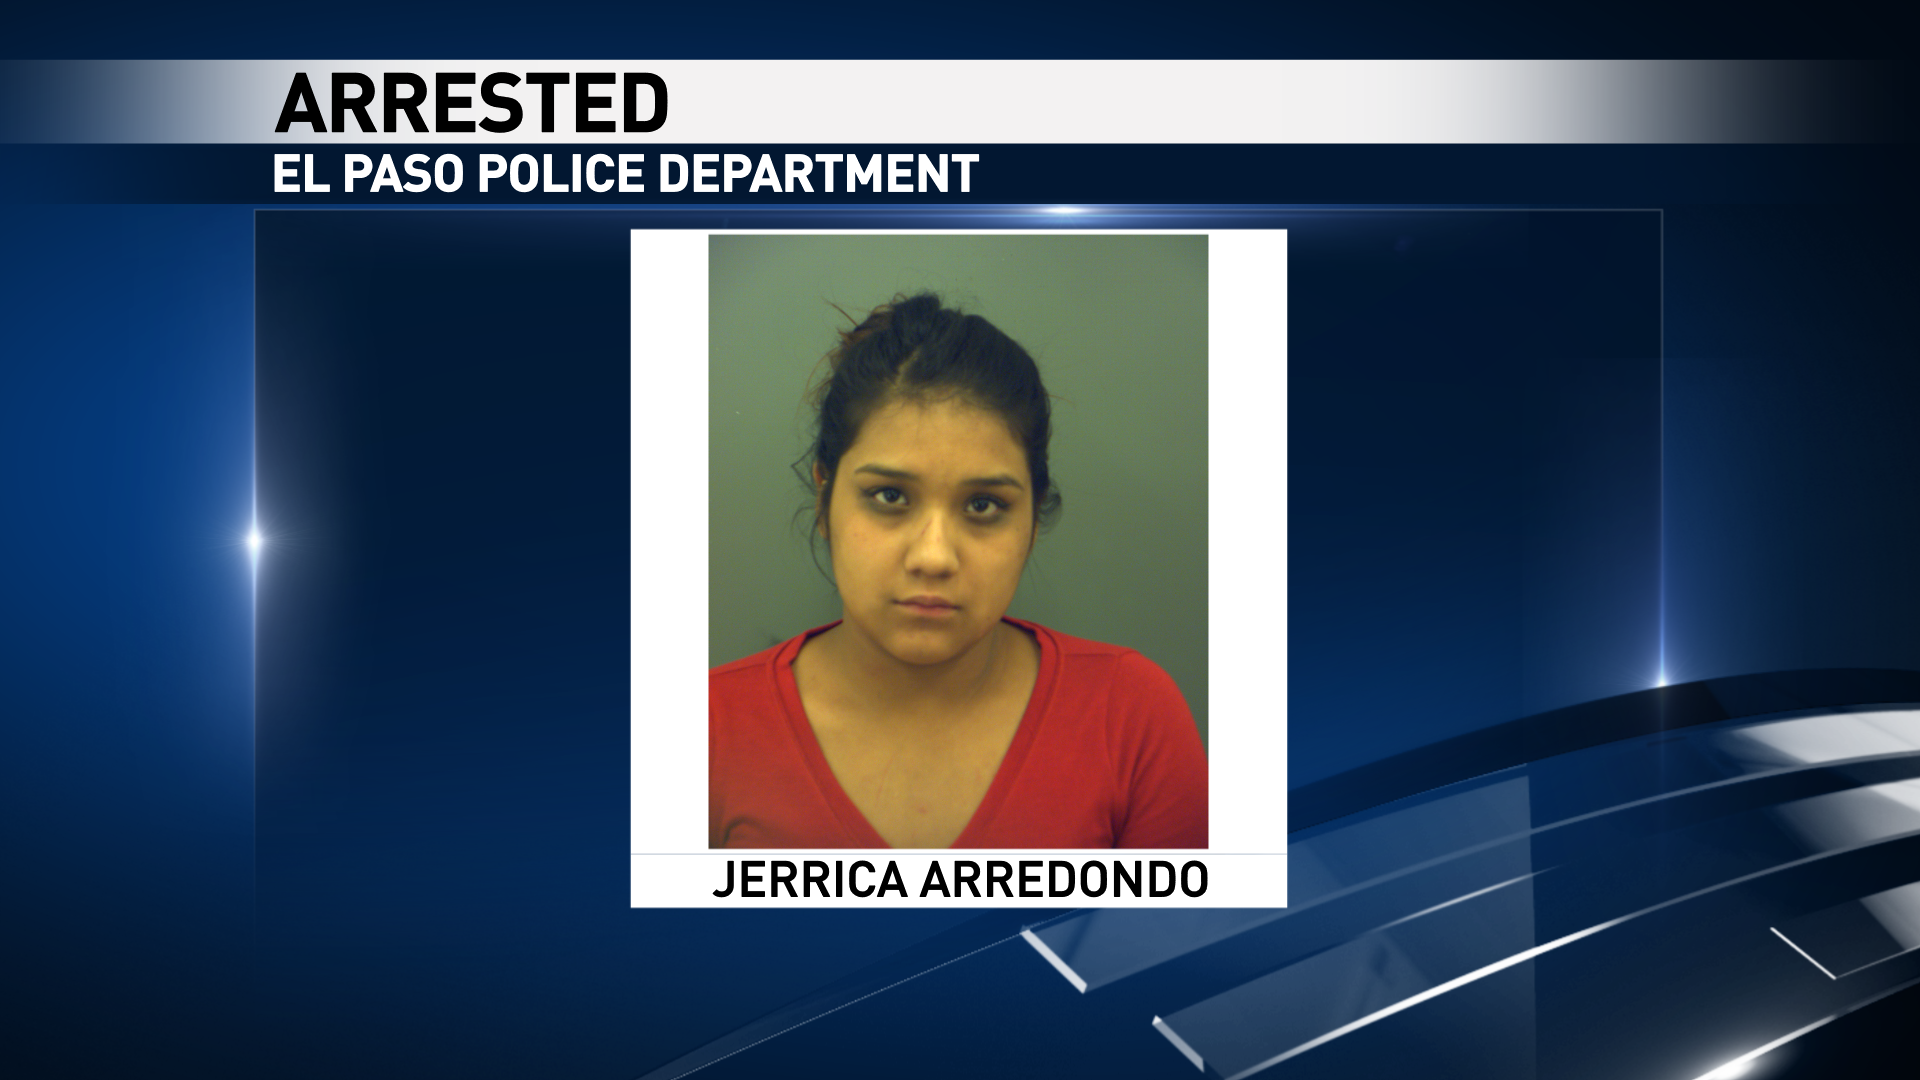 Jerrica Arredondo charged with aggravated assault in a fight that resulted in someone being stabbed.